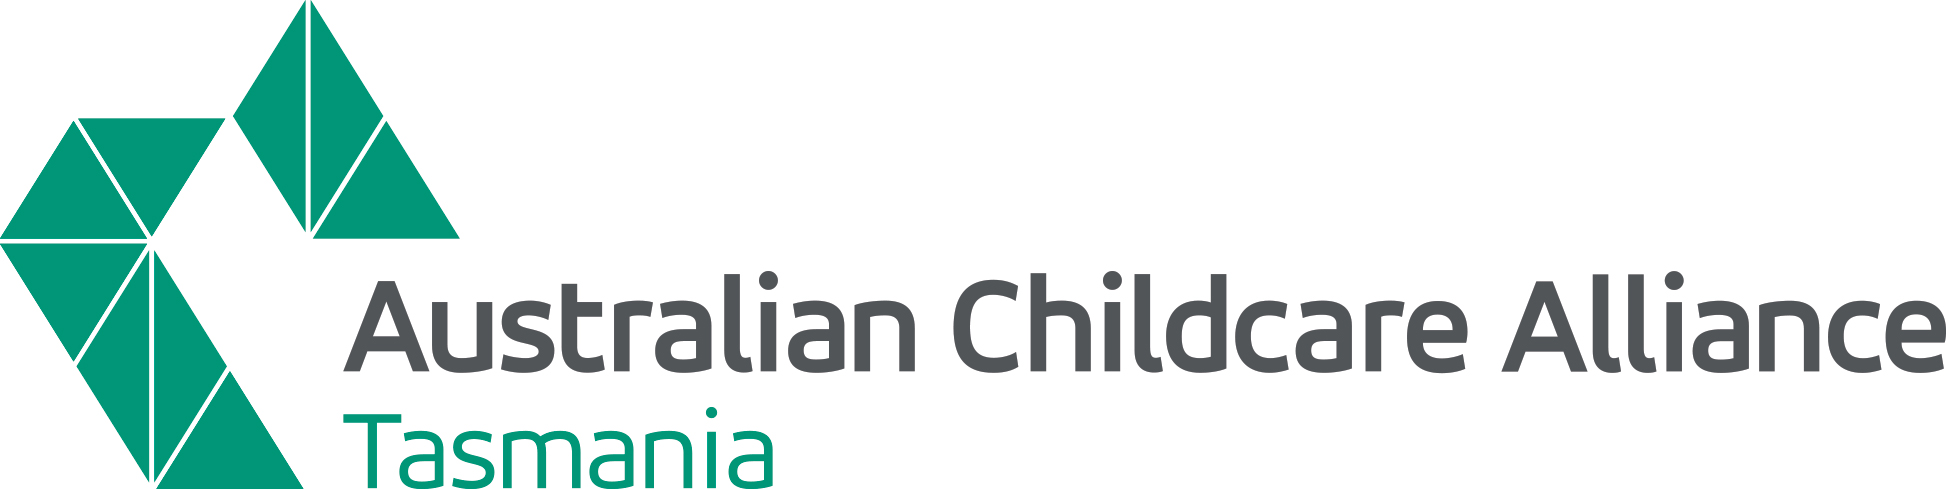 Australian Childcare Alliance Tasmania